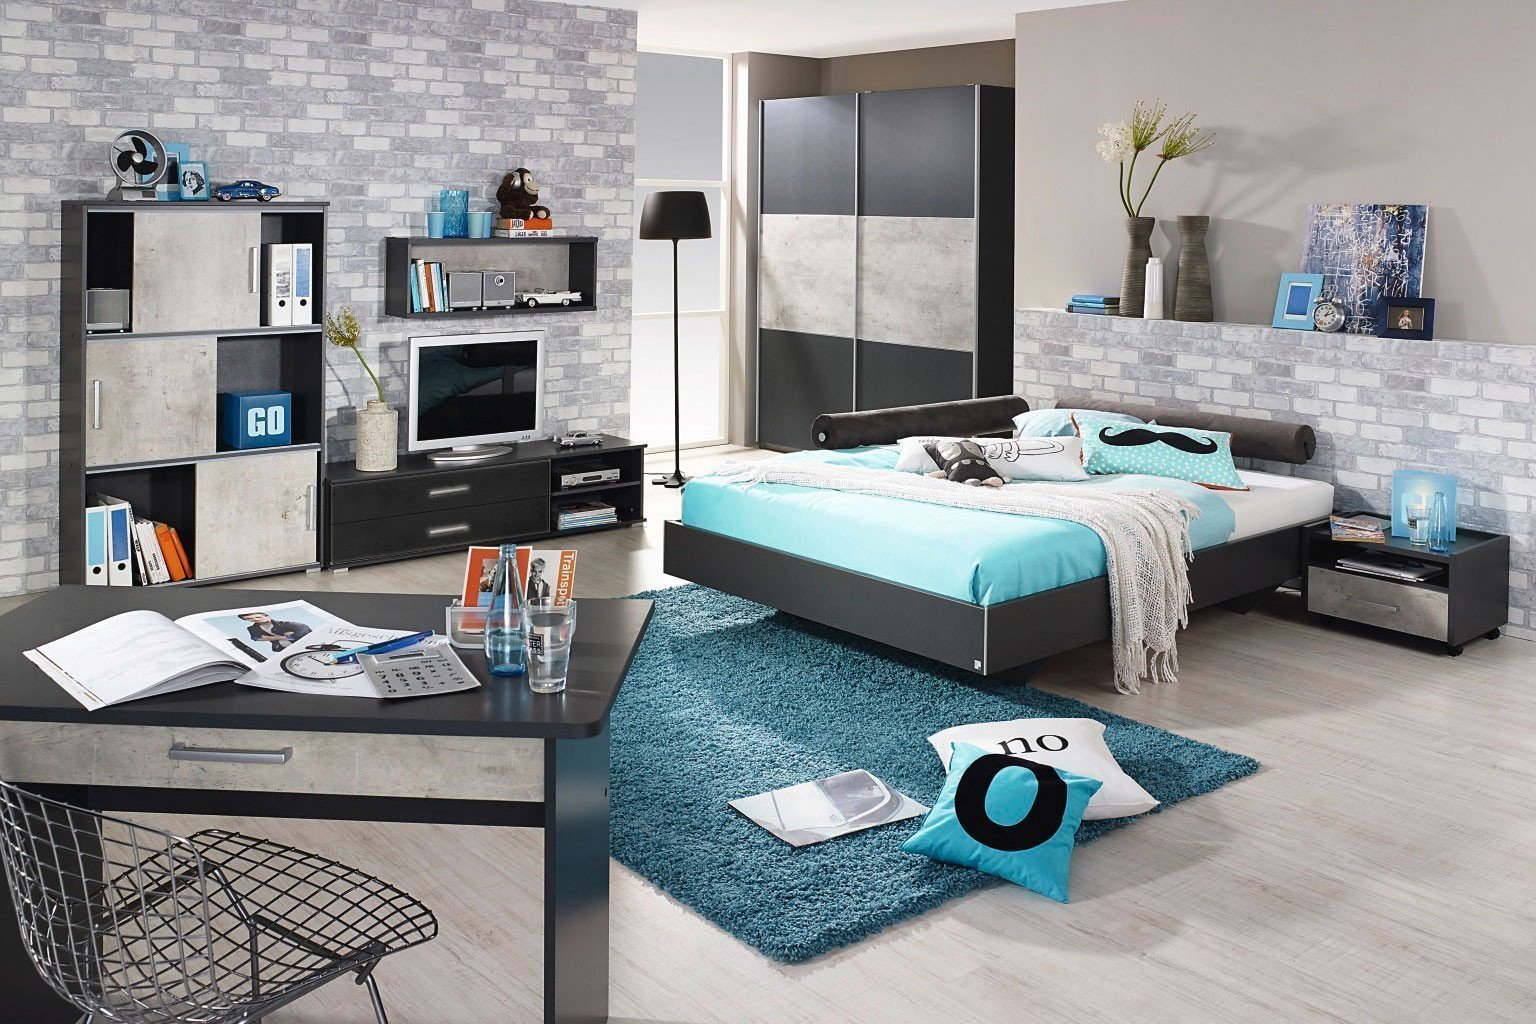 rauch mailo kleiderschrank grau stone print m bel letz ihr online shop. Black Bedroom Furniture Sets. Home Design Ideas